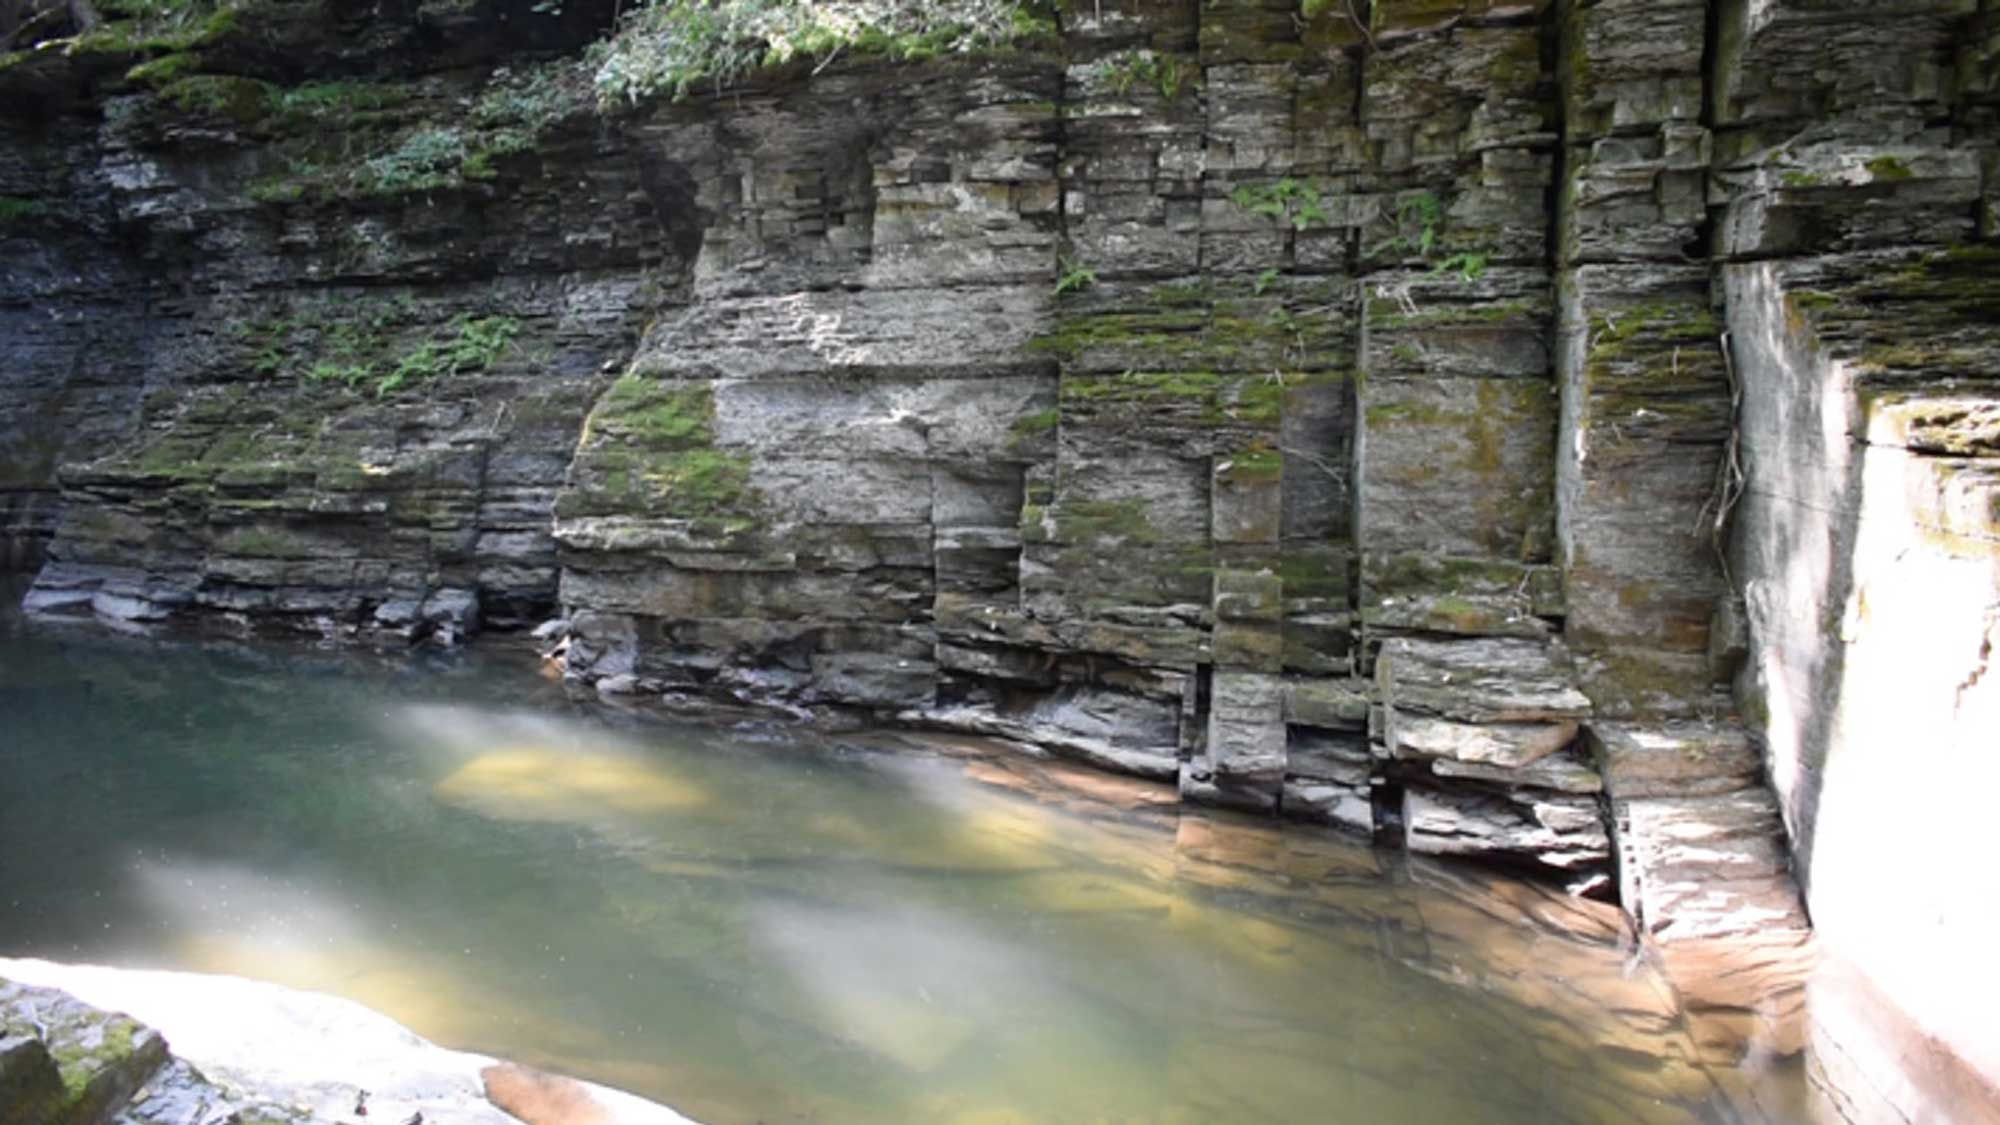 Photograph of joint surfaces in Six Mile Creek.